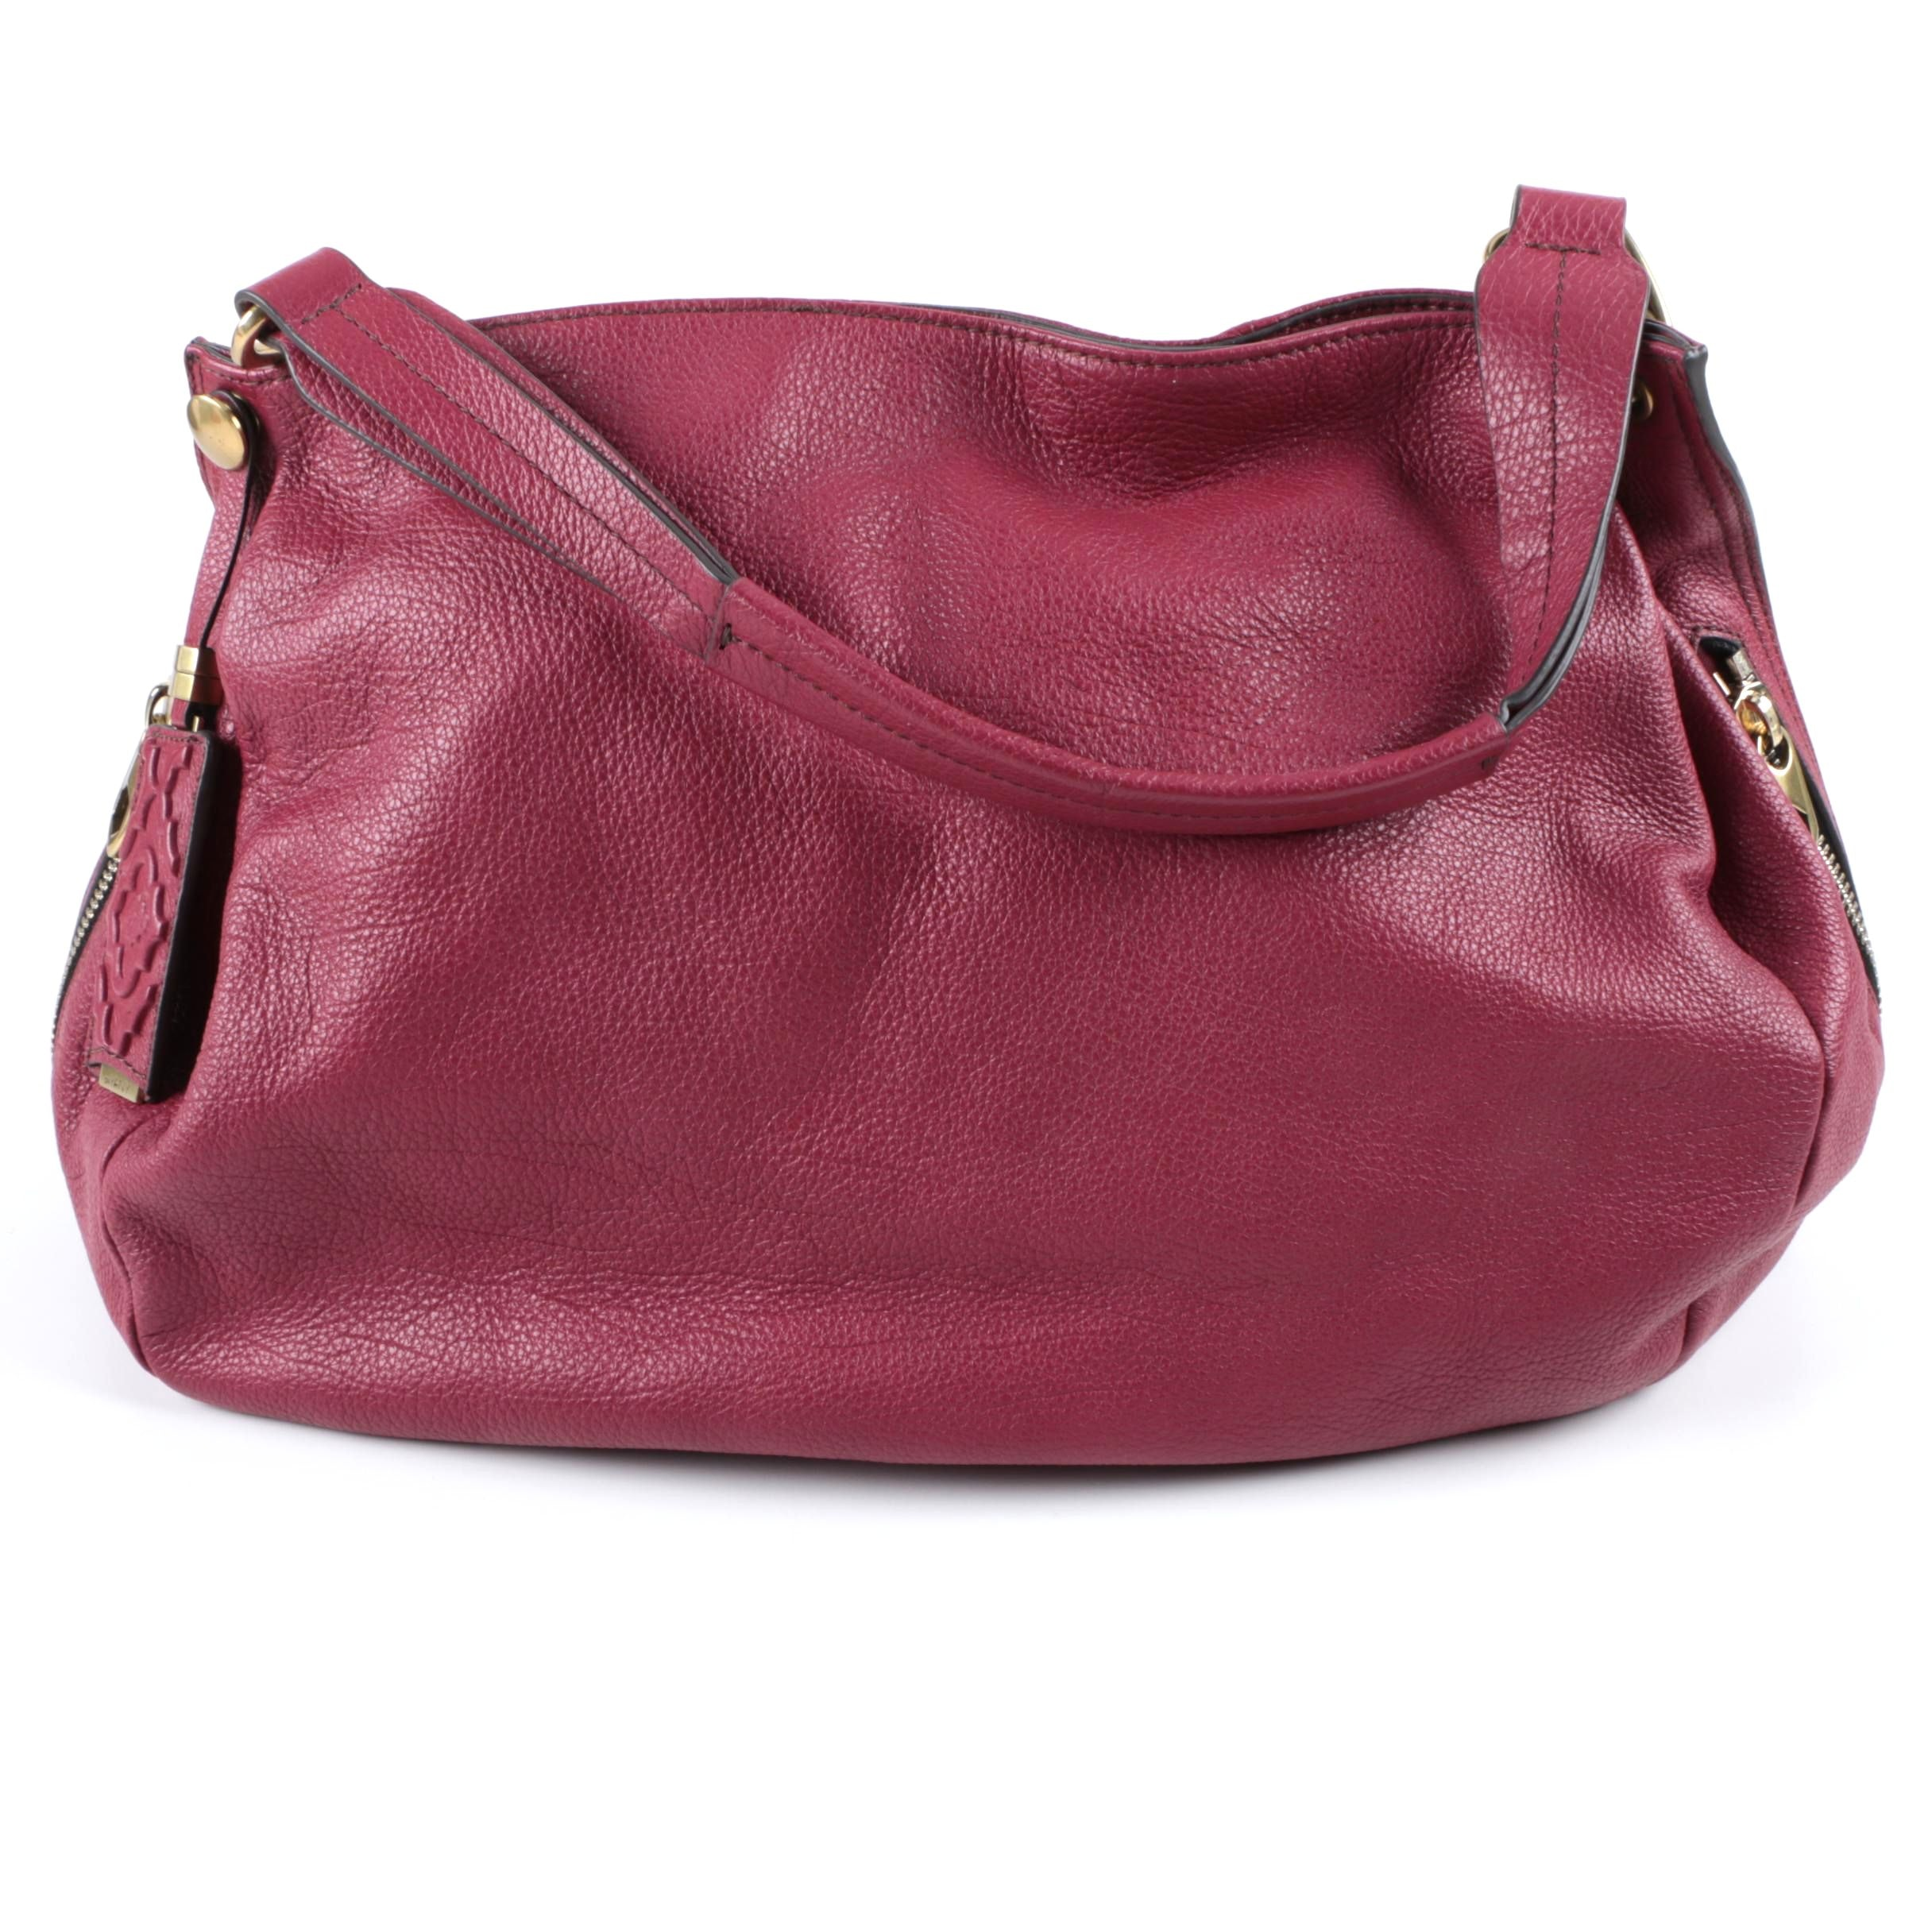 Oryany Red Leather Hobo Handbag